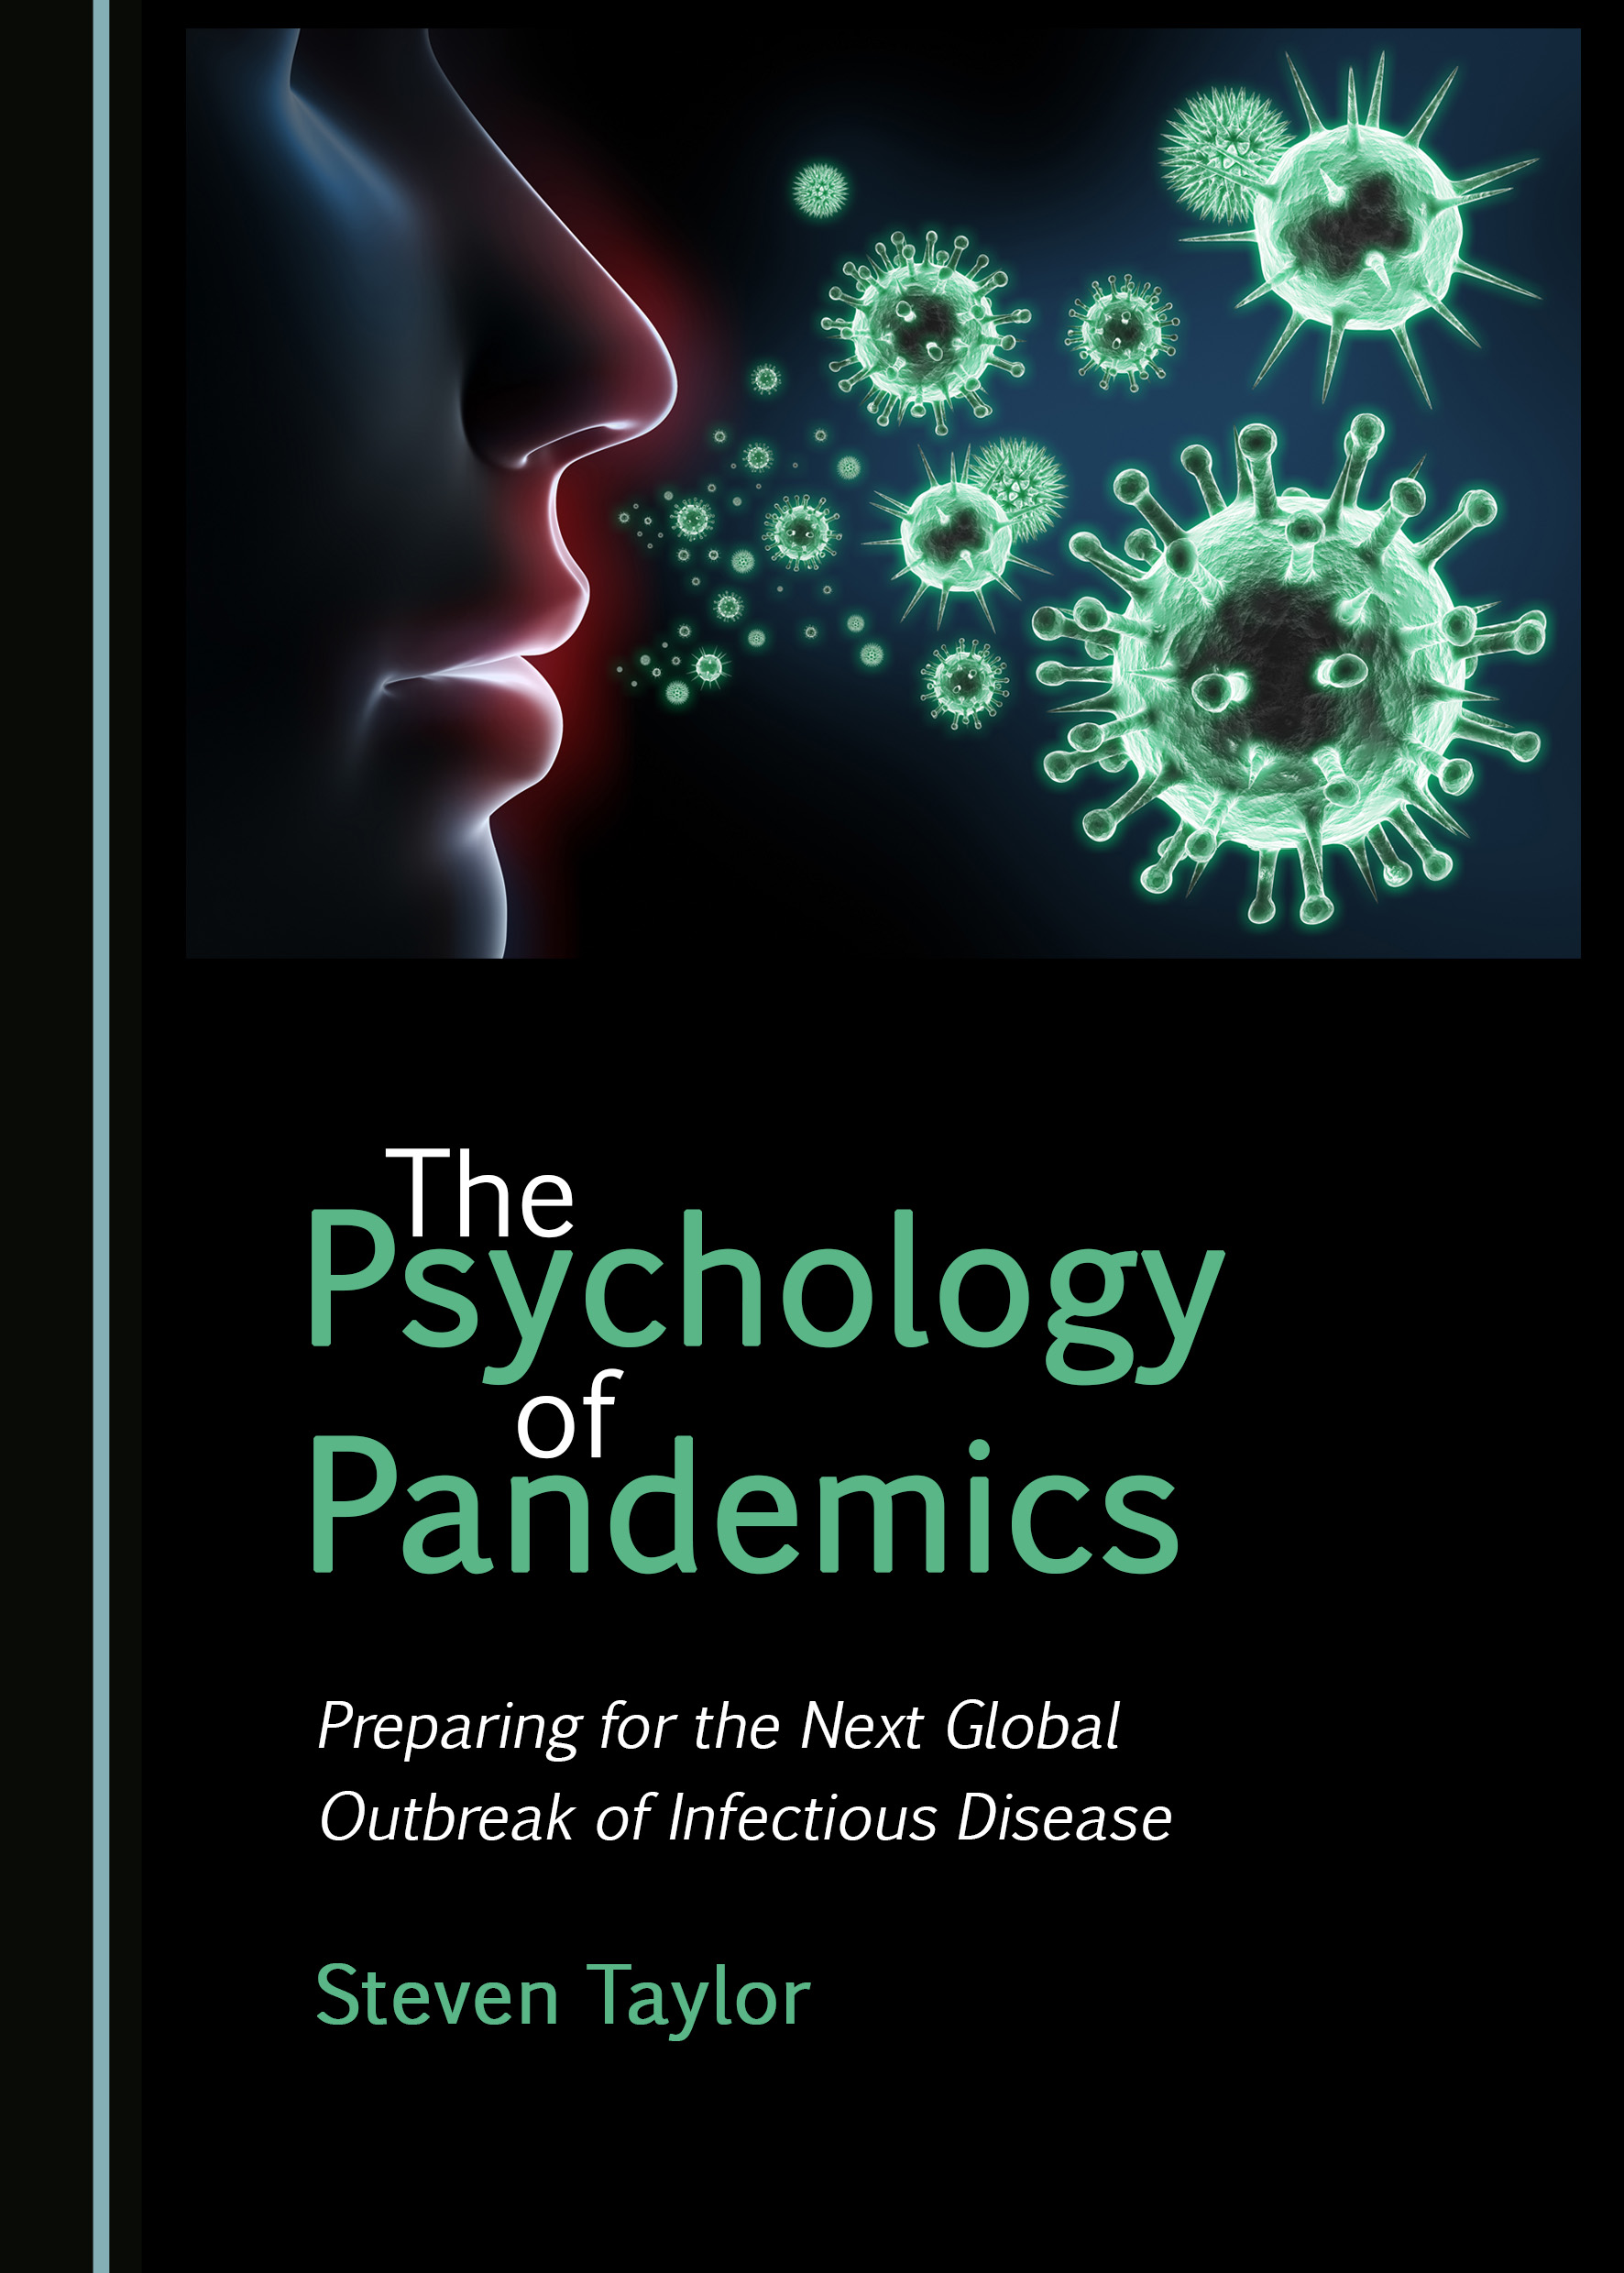 The Psychology of Pandemics: Preparing for the Next Global Outbreak of Infectious Disease